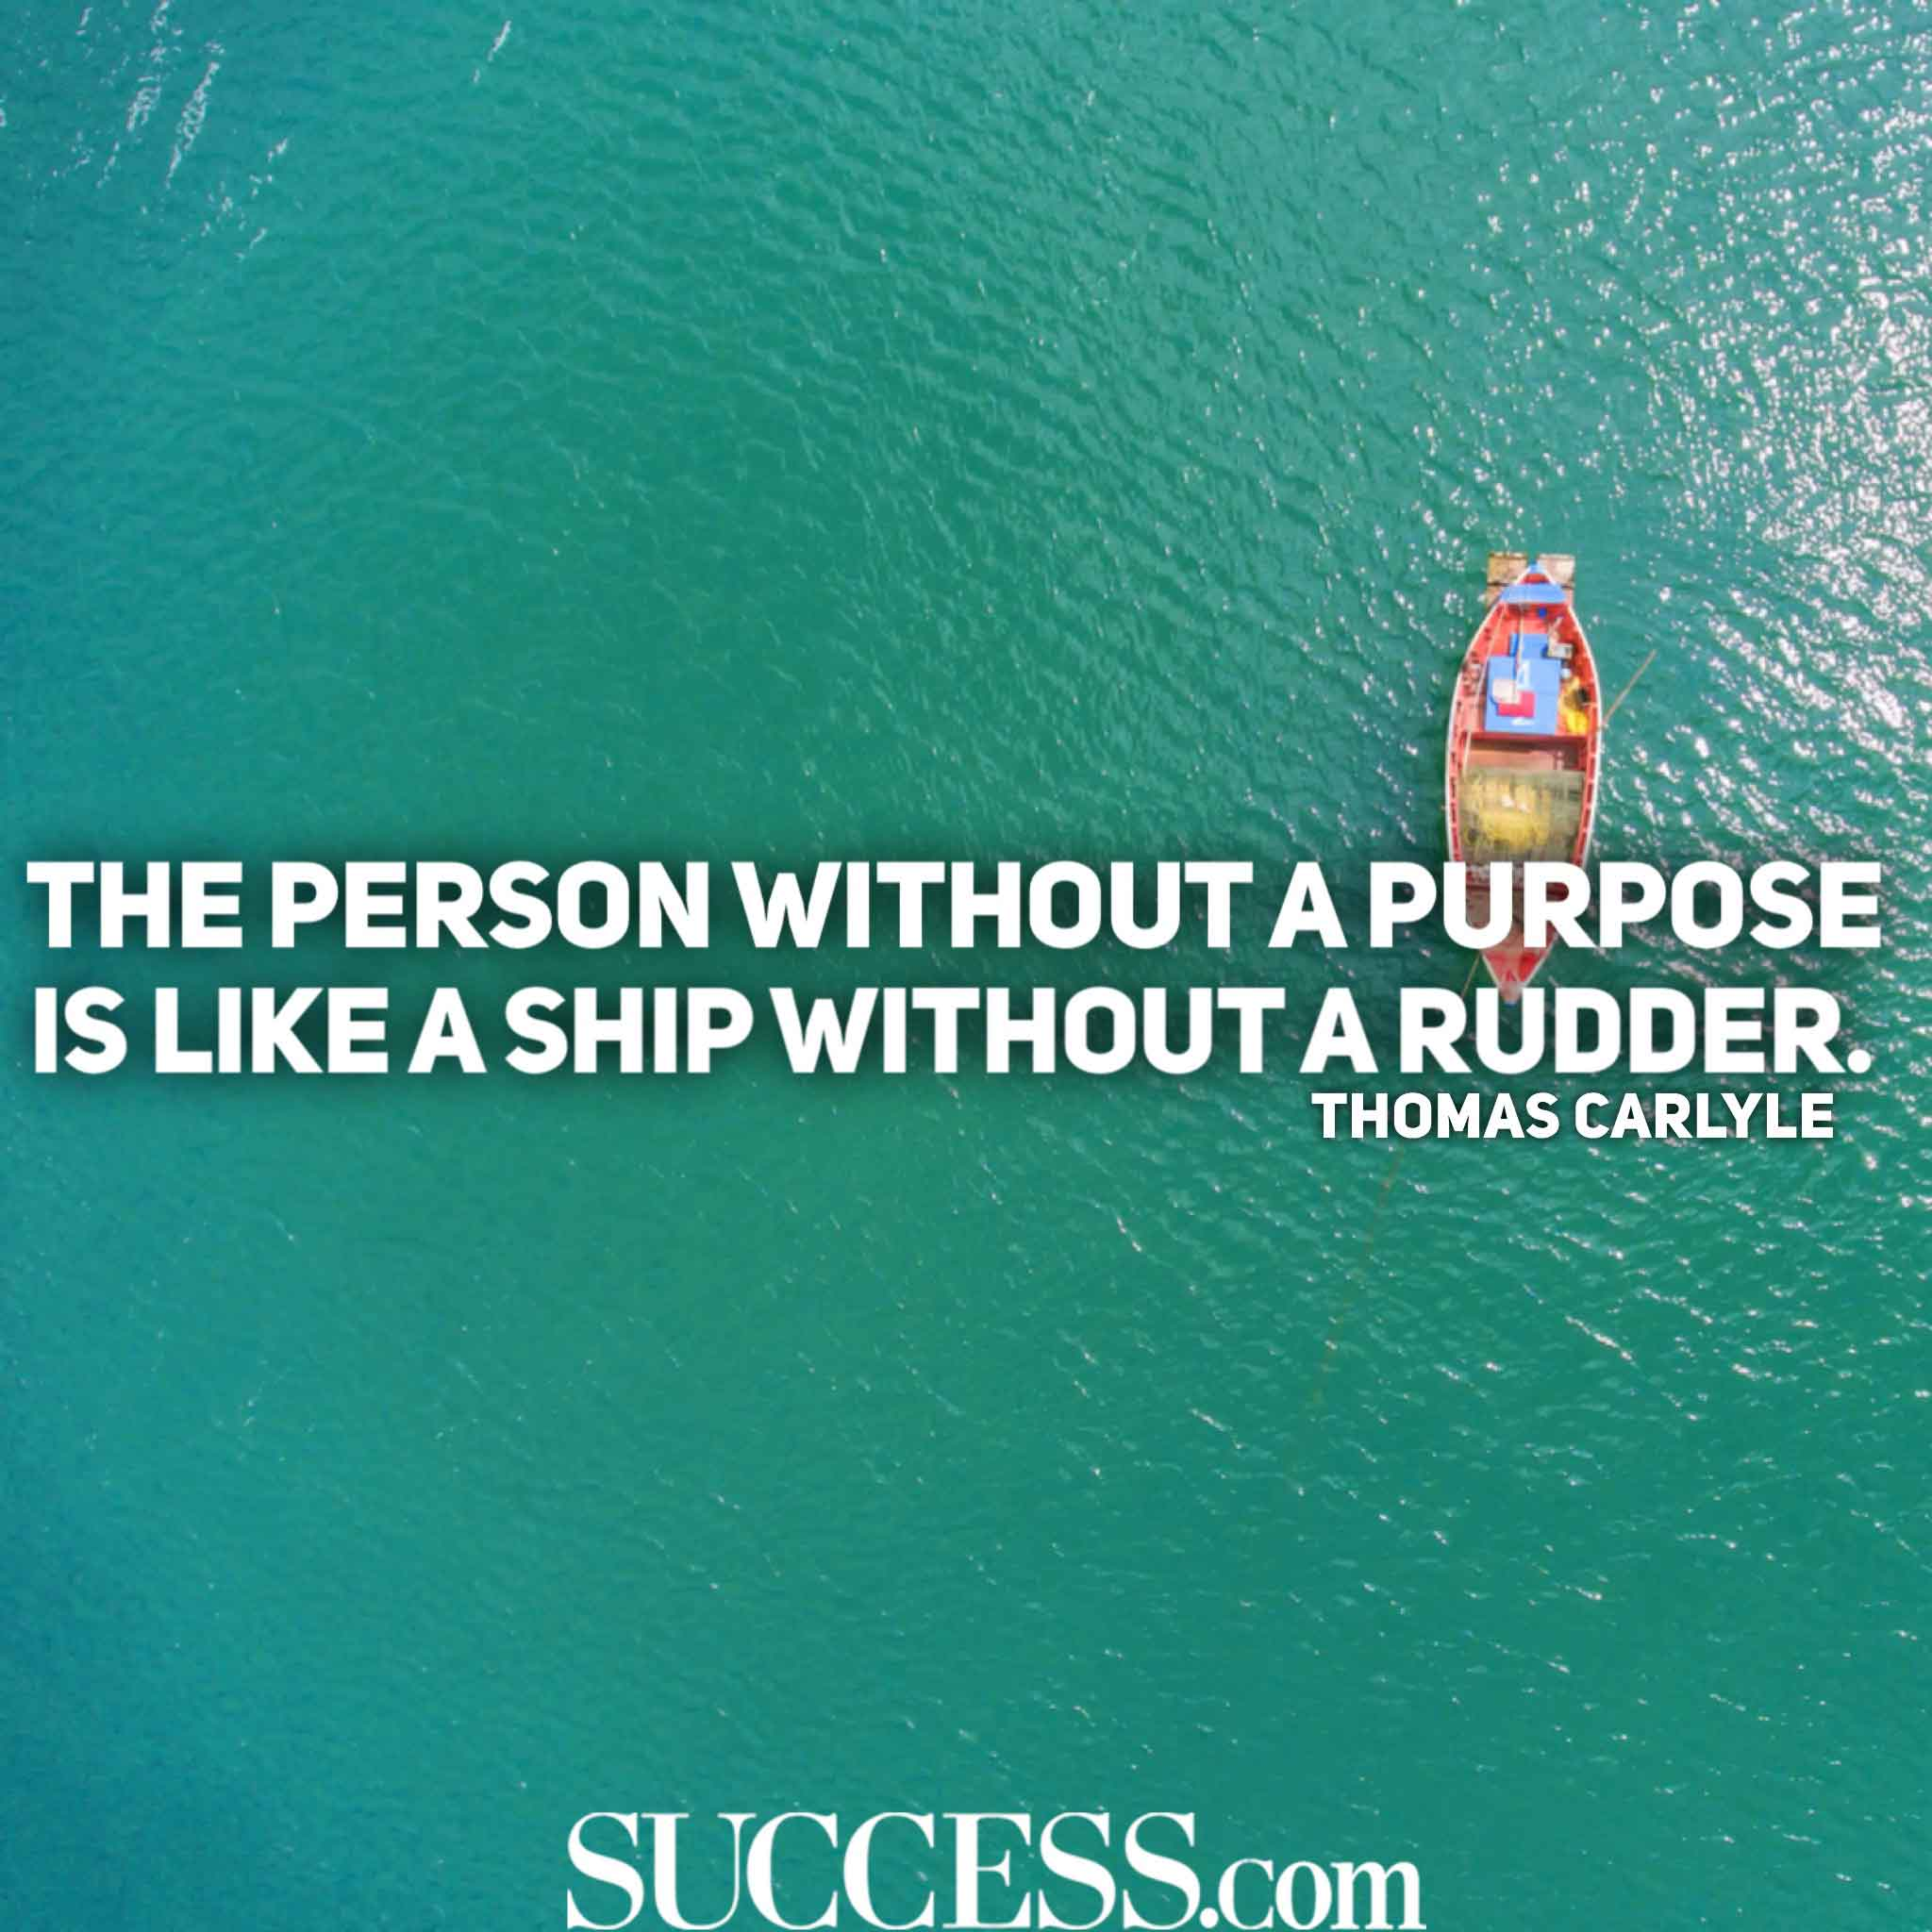 17 Inspiring Quotes to Help You Live a Life of Purpose